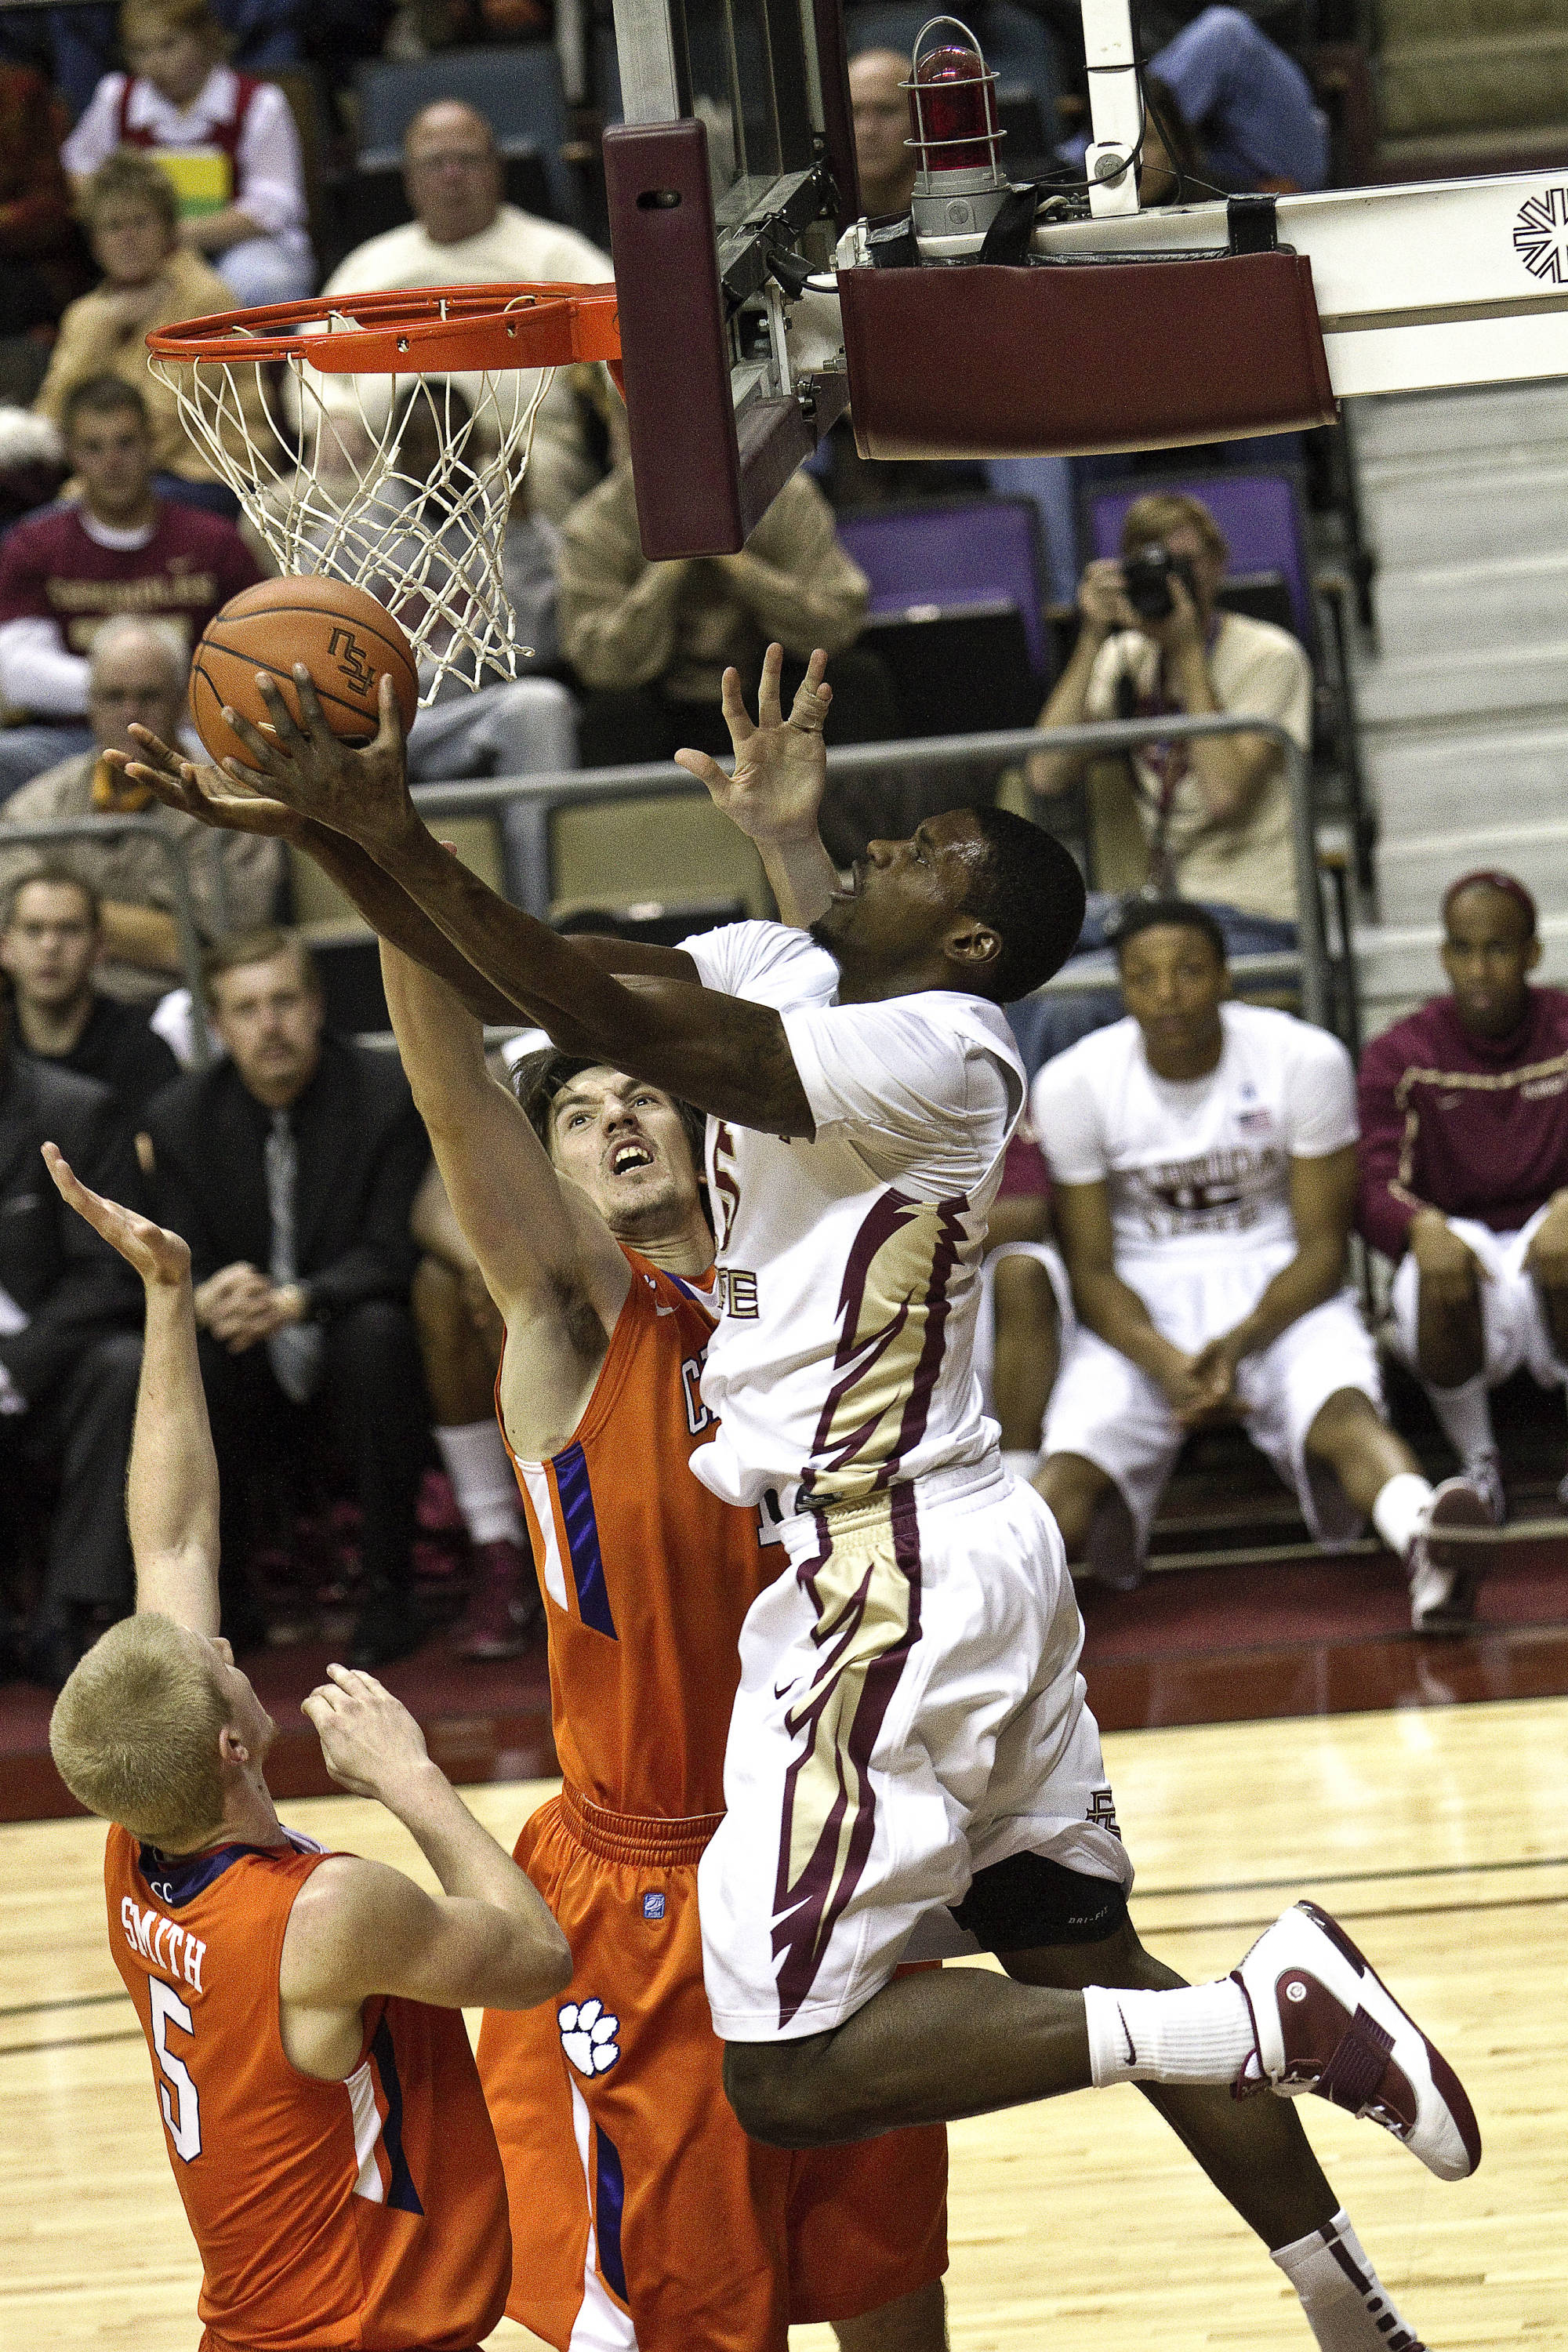 FSU vs Clemson - 12/12/2010 - Bernard James (5)